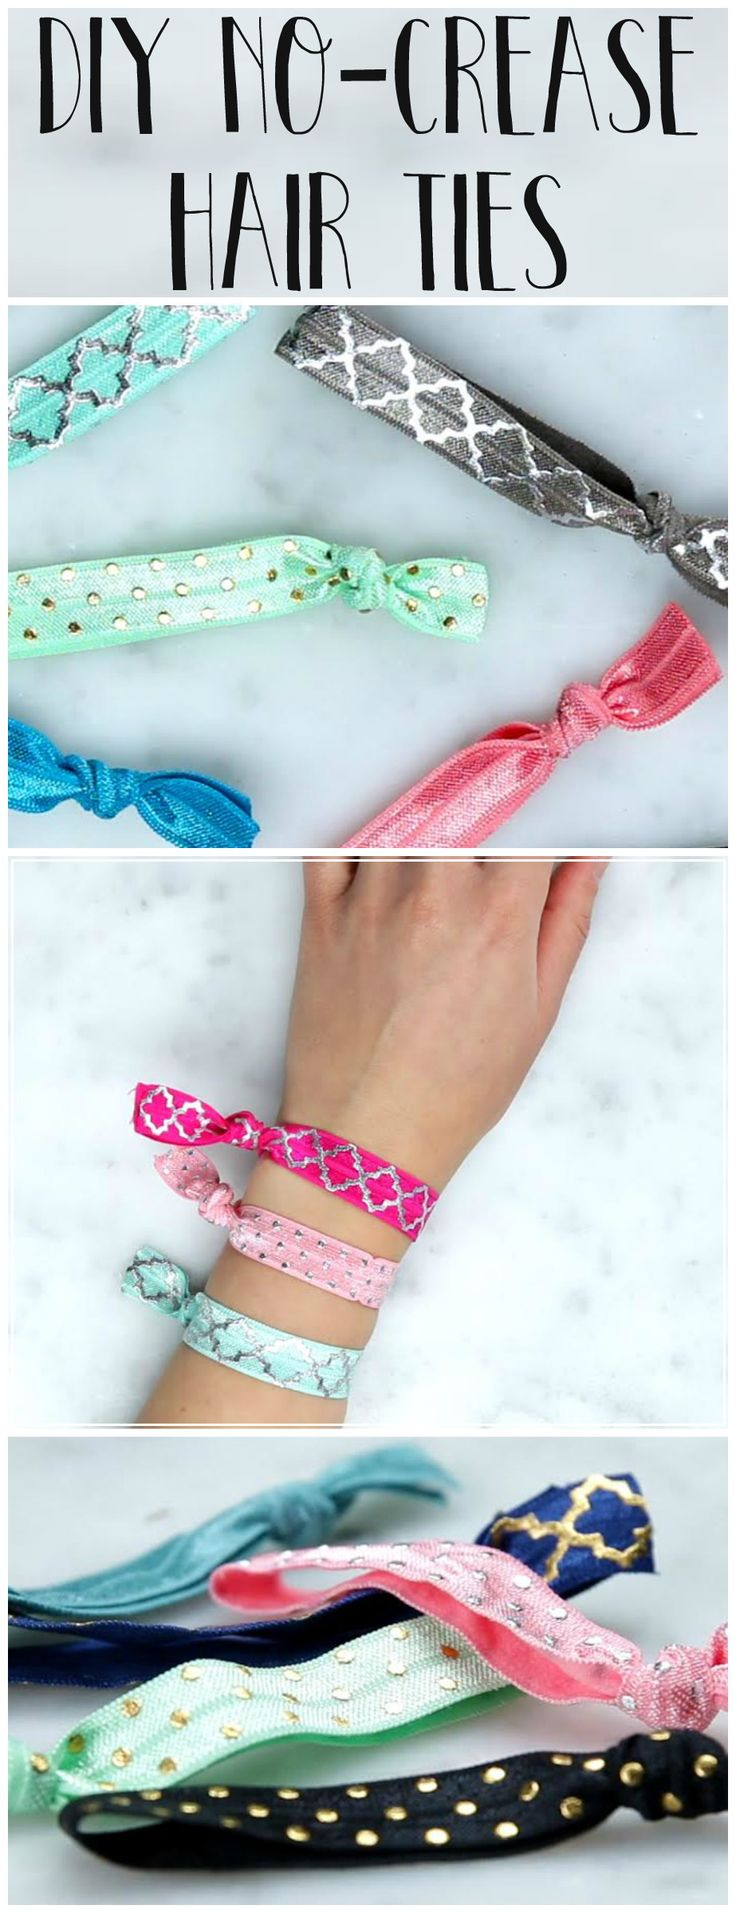 How to make no-crease hair ties.